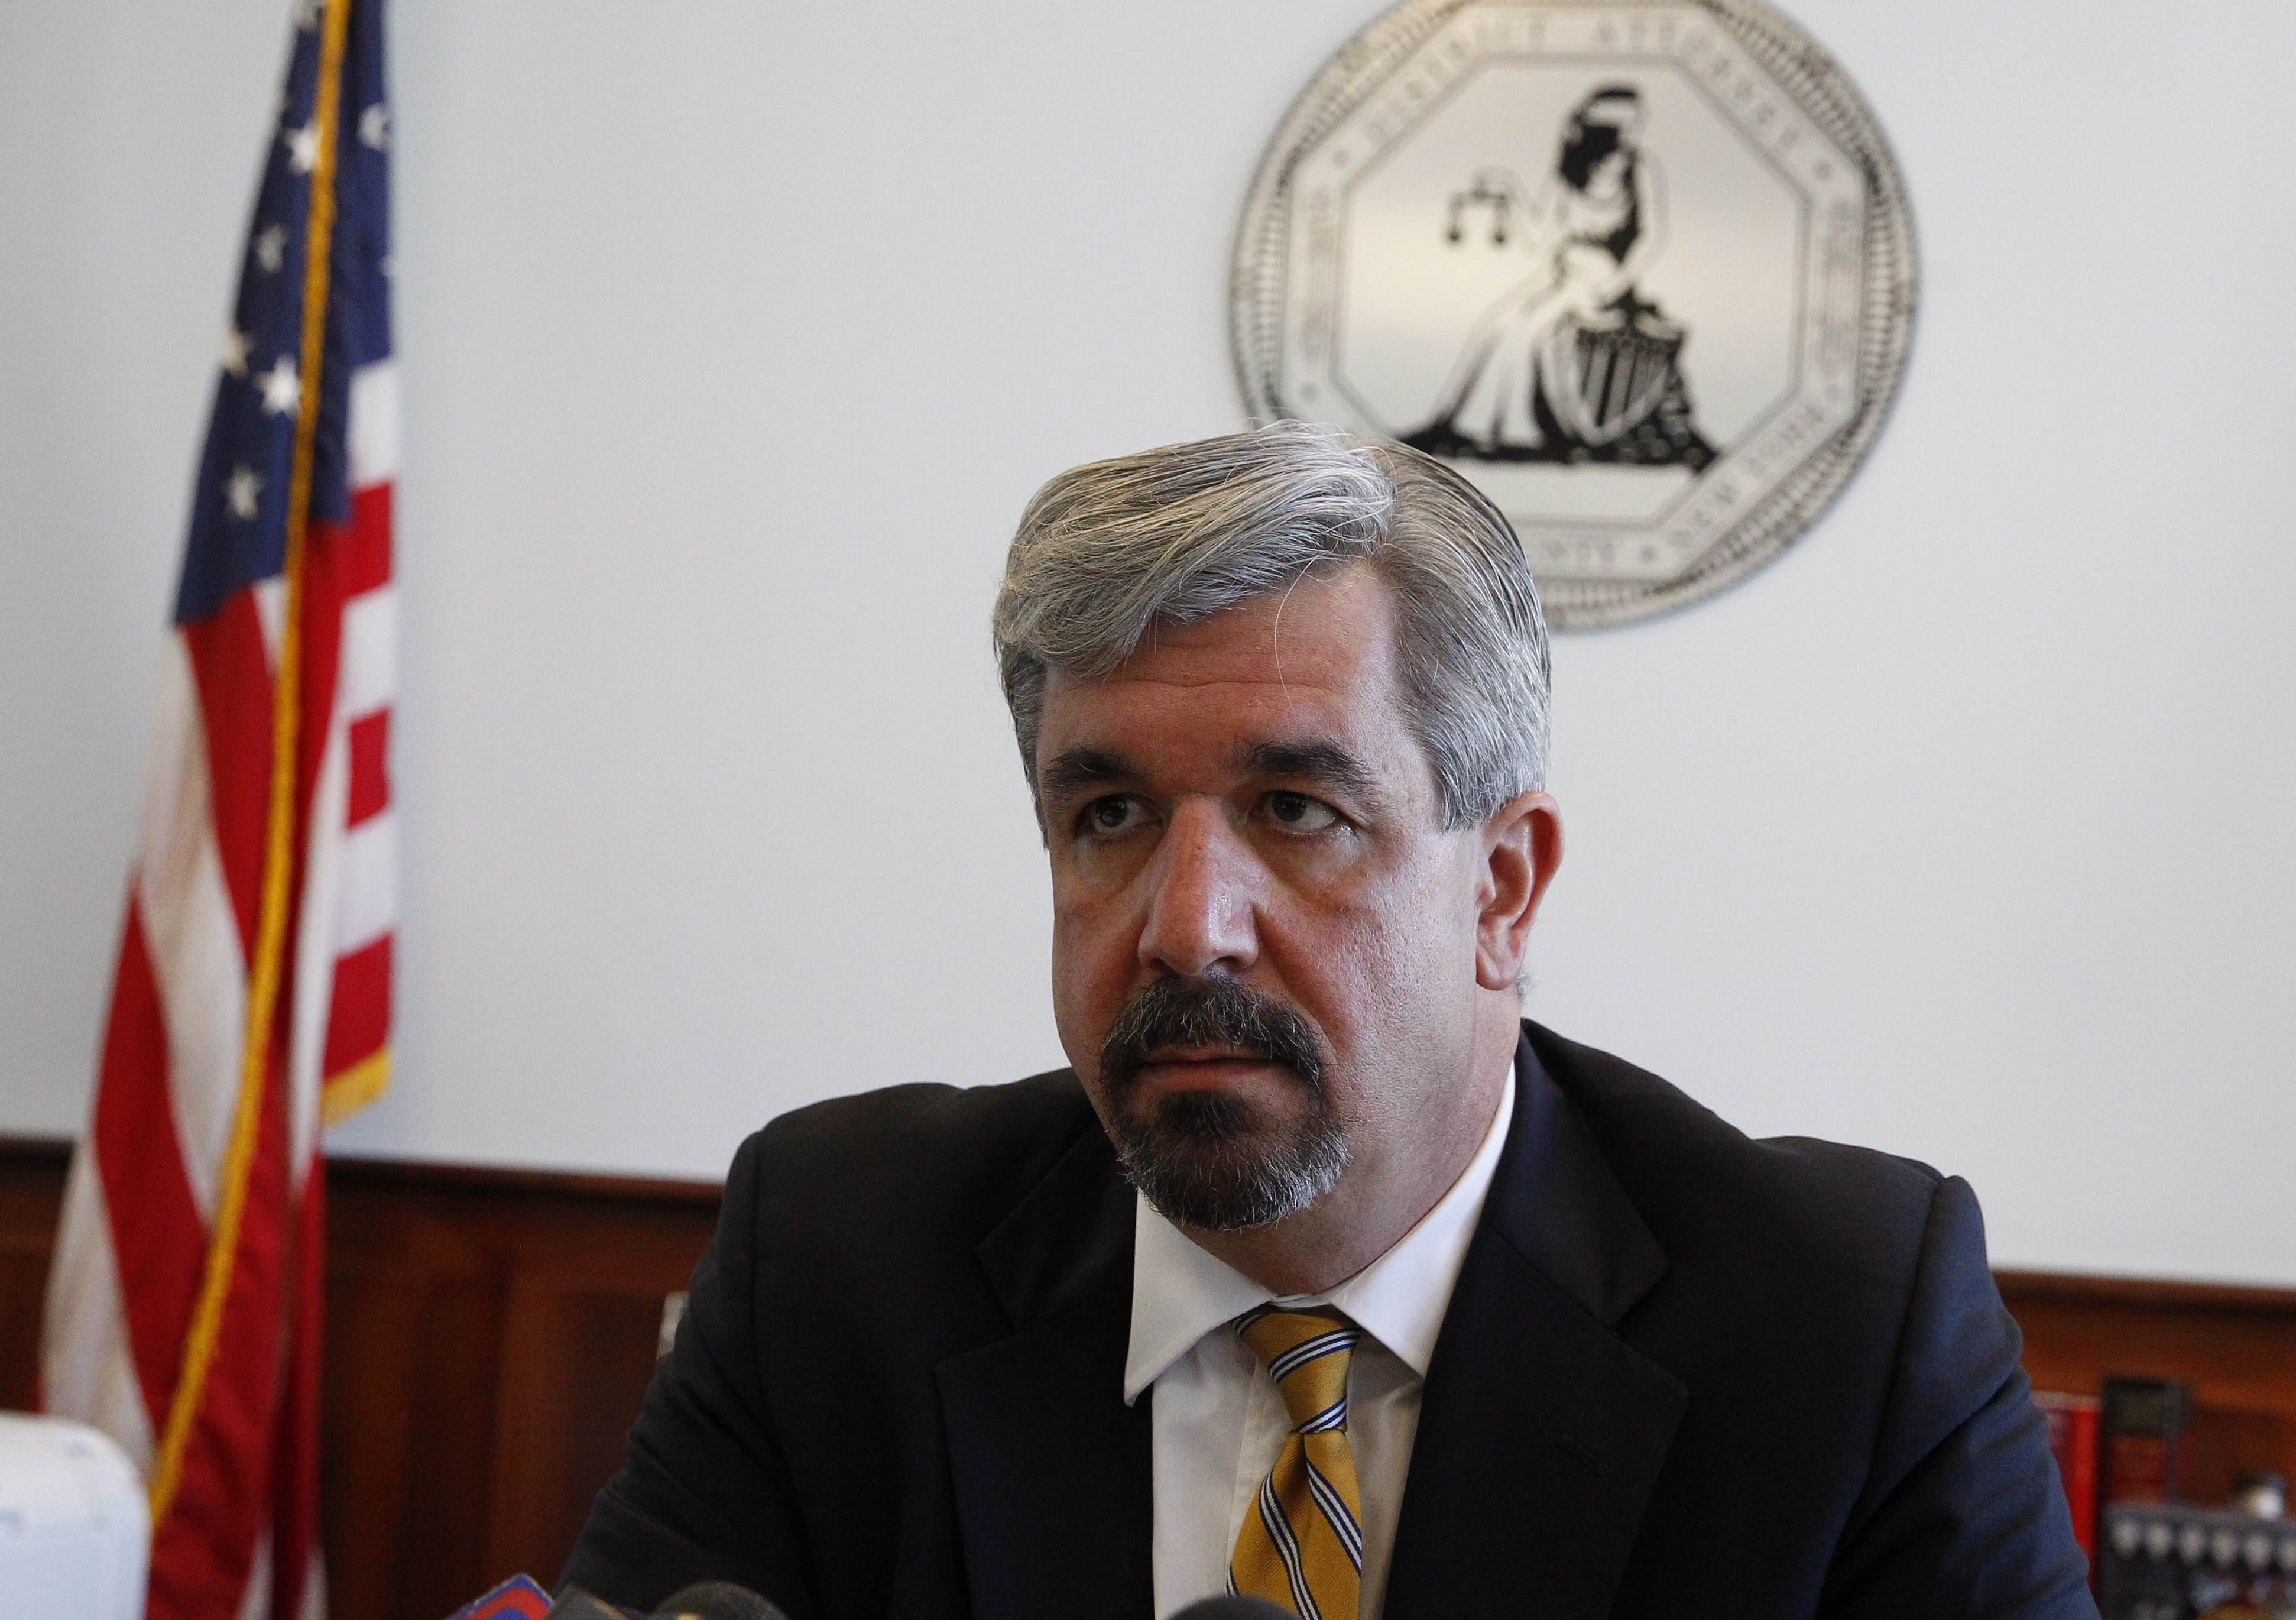 Erie County District Attorney Frank Sedita III says he is angry that he made the wrong judgment in the Rodriguez murder case.(Buffalo News file photo)